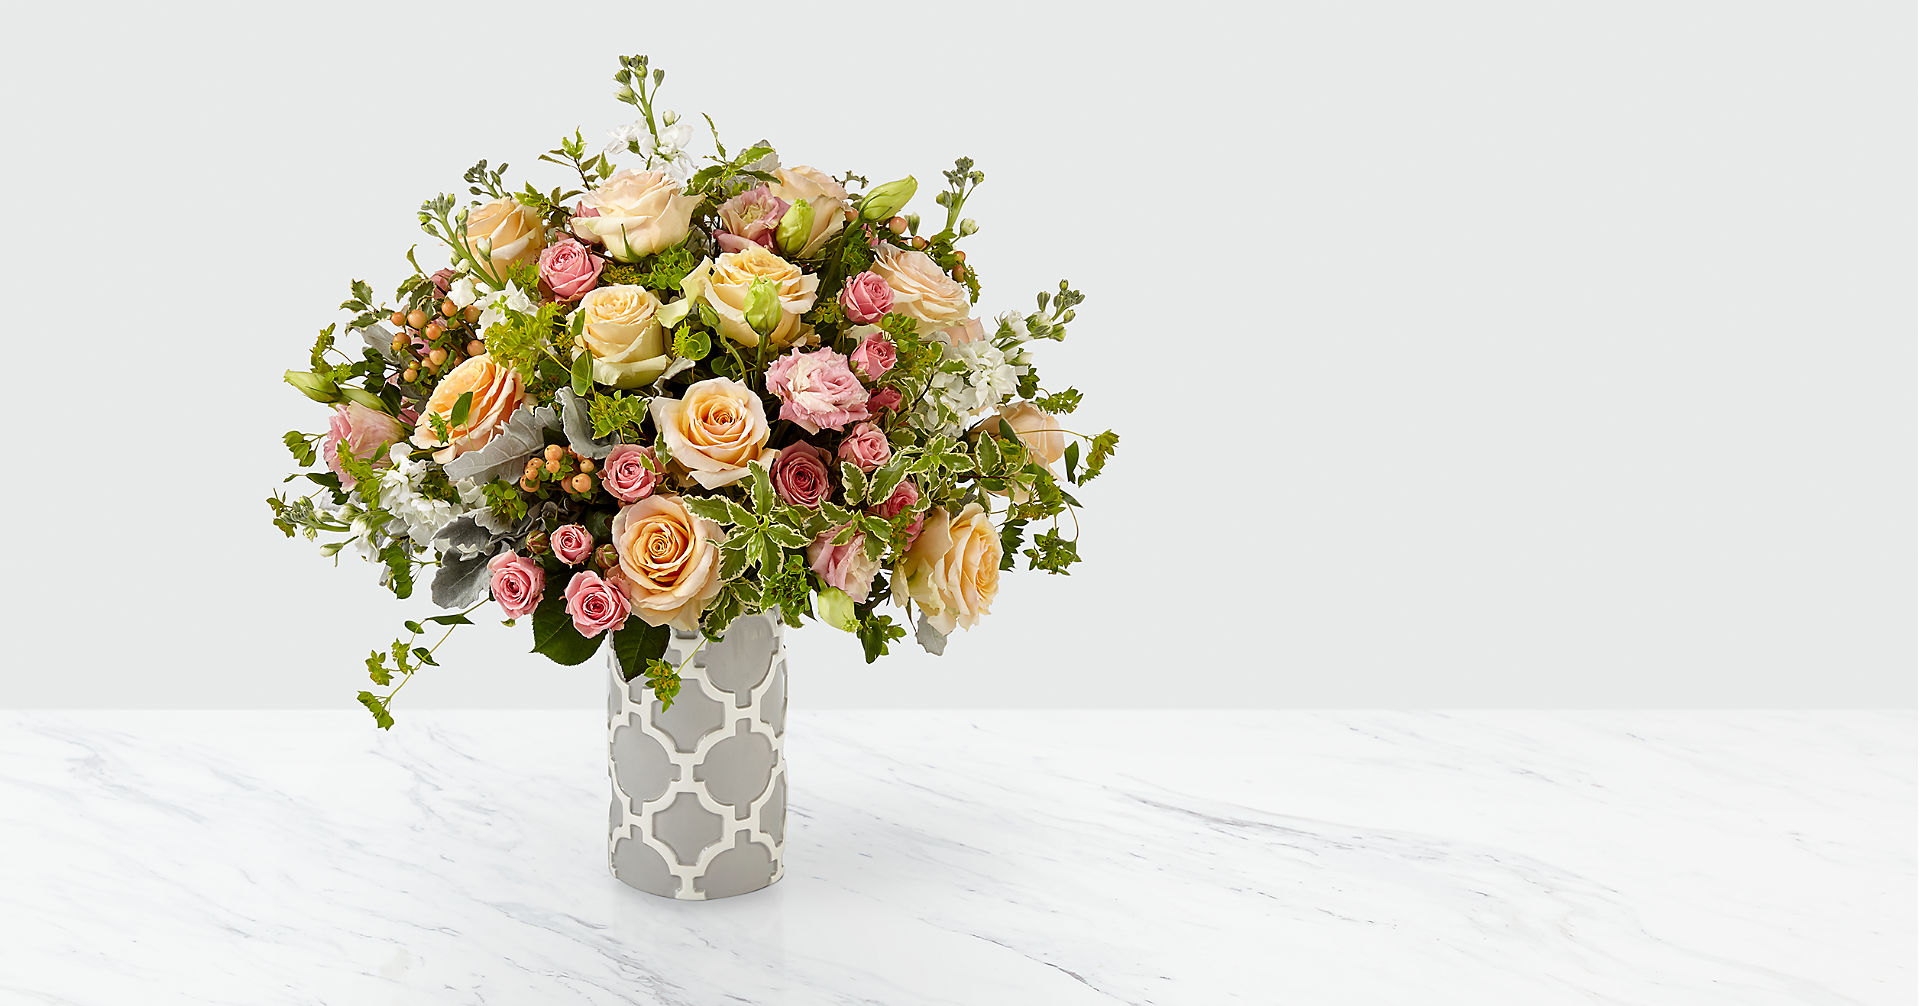 Ballad™ Luxury Bouquet - Deluxe - Image 1 Of 3